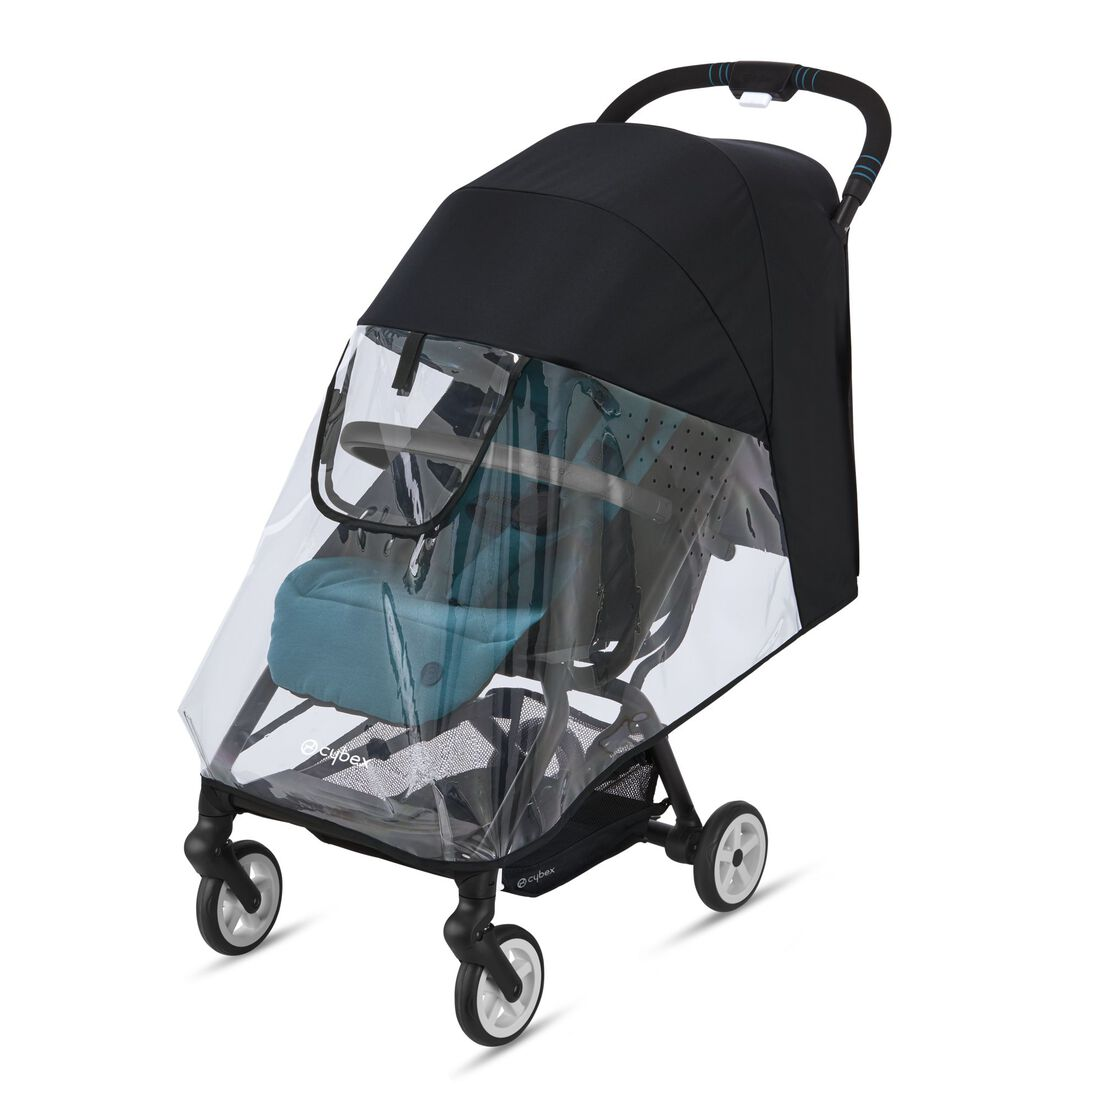 CYBEX Rain Cover Eezy S Line - Transparent in Transparent large image number 1